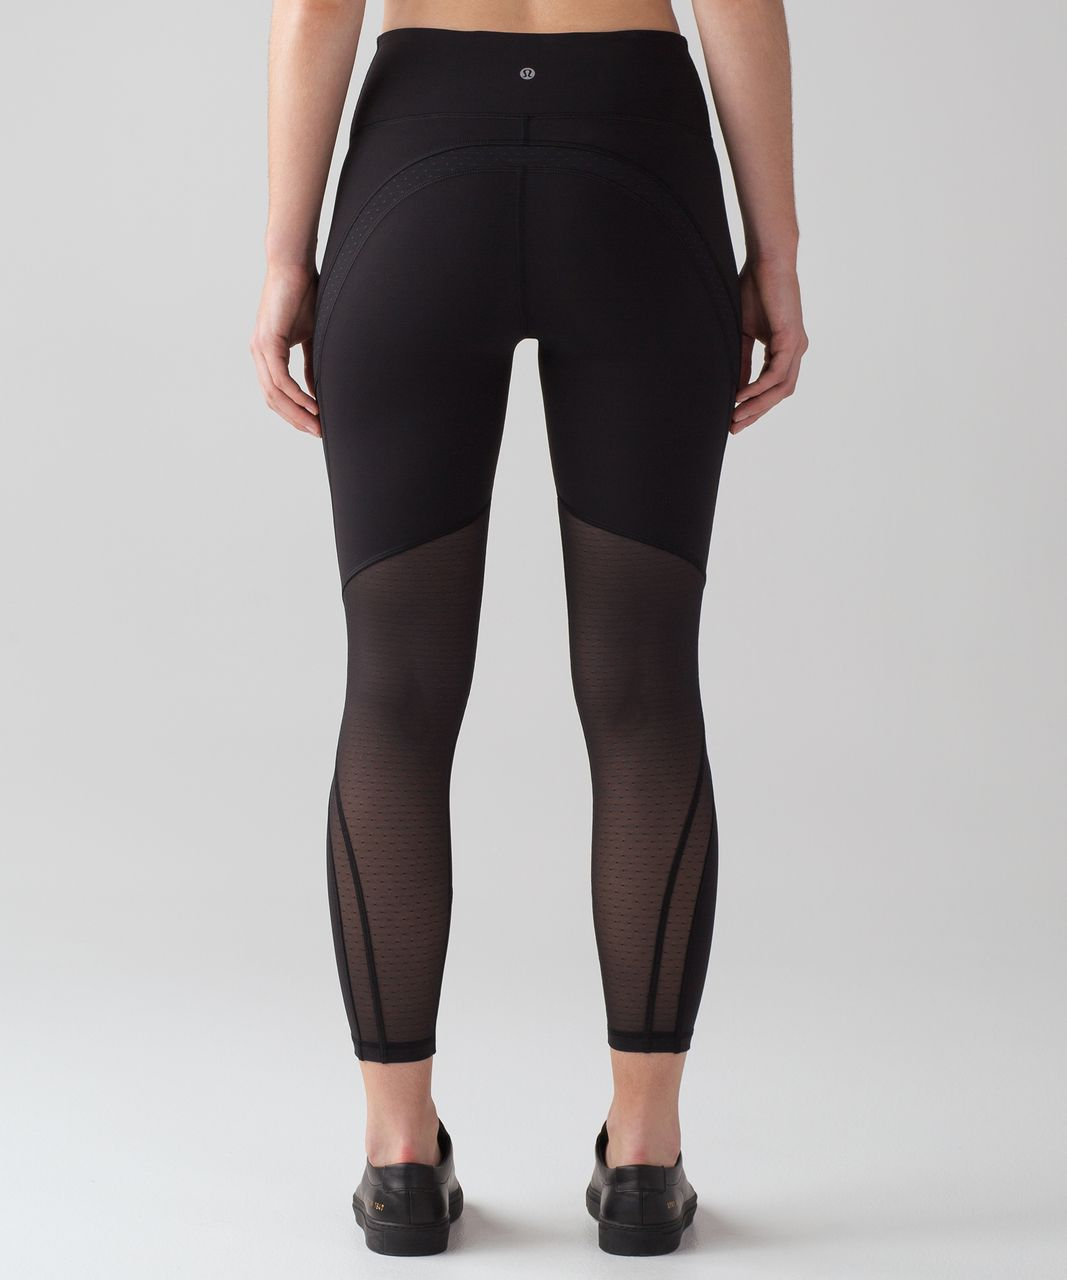 Lululemon Revitalize Tight - Black